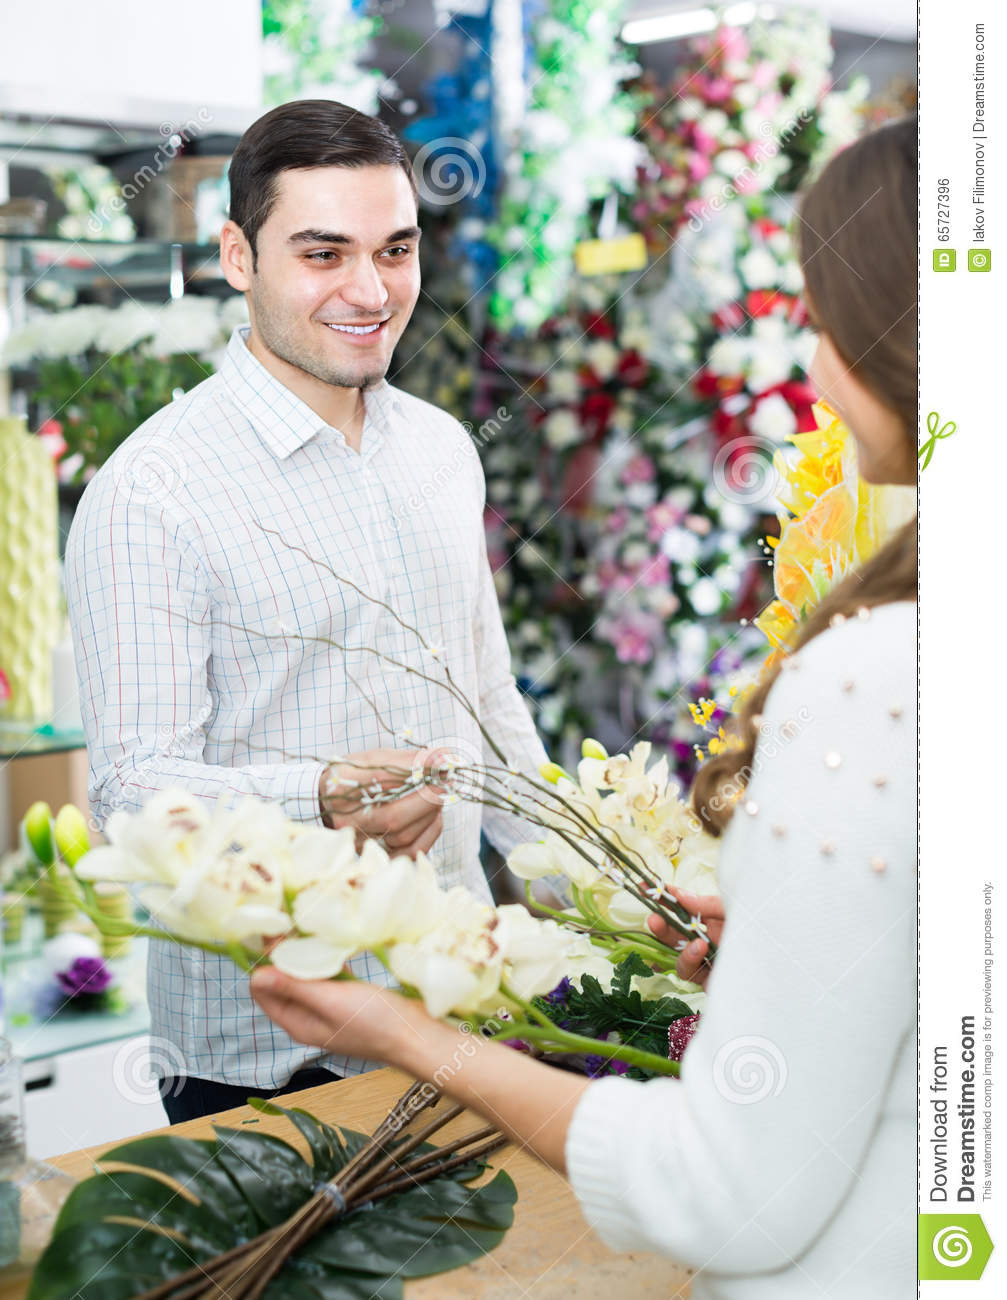 Seller helping to pick flowers man stock photo image of female seller helping to pick flowers man izmirmasajfo Image collections